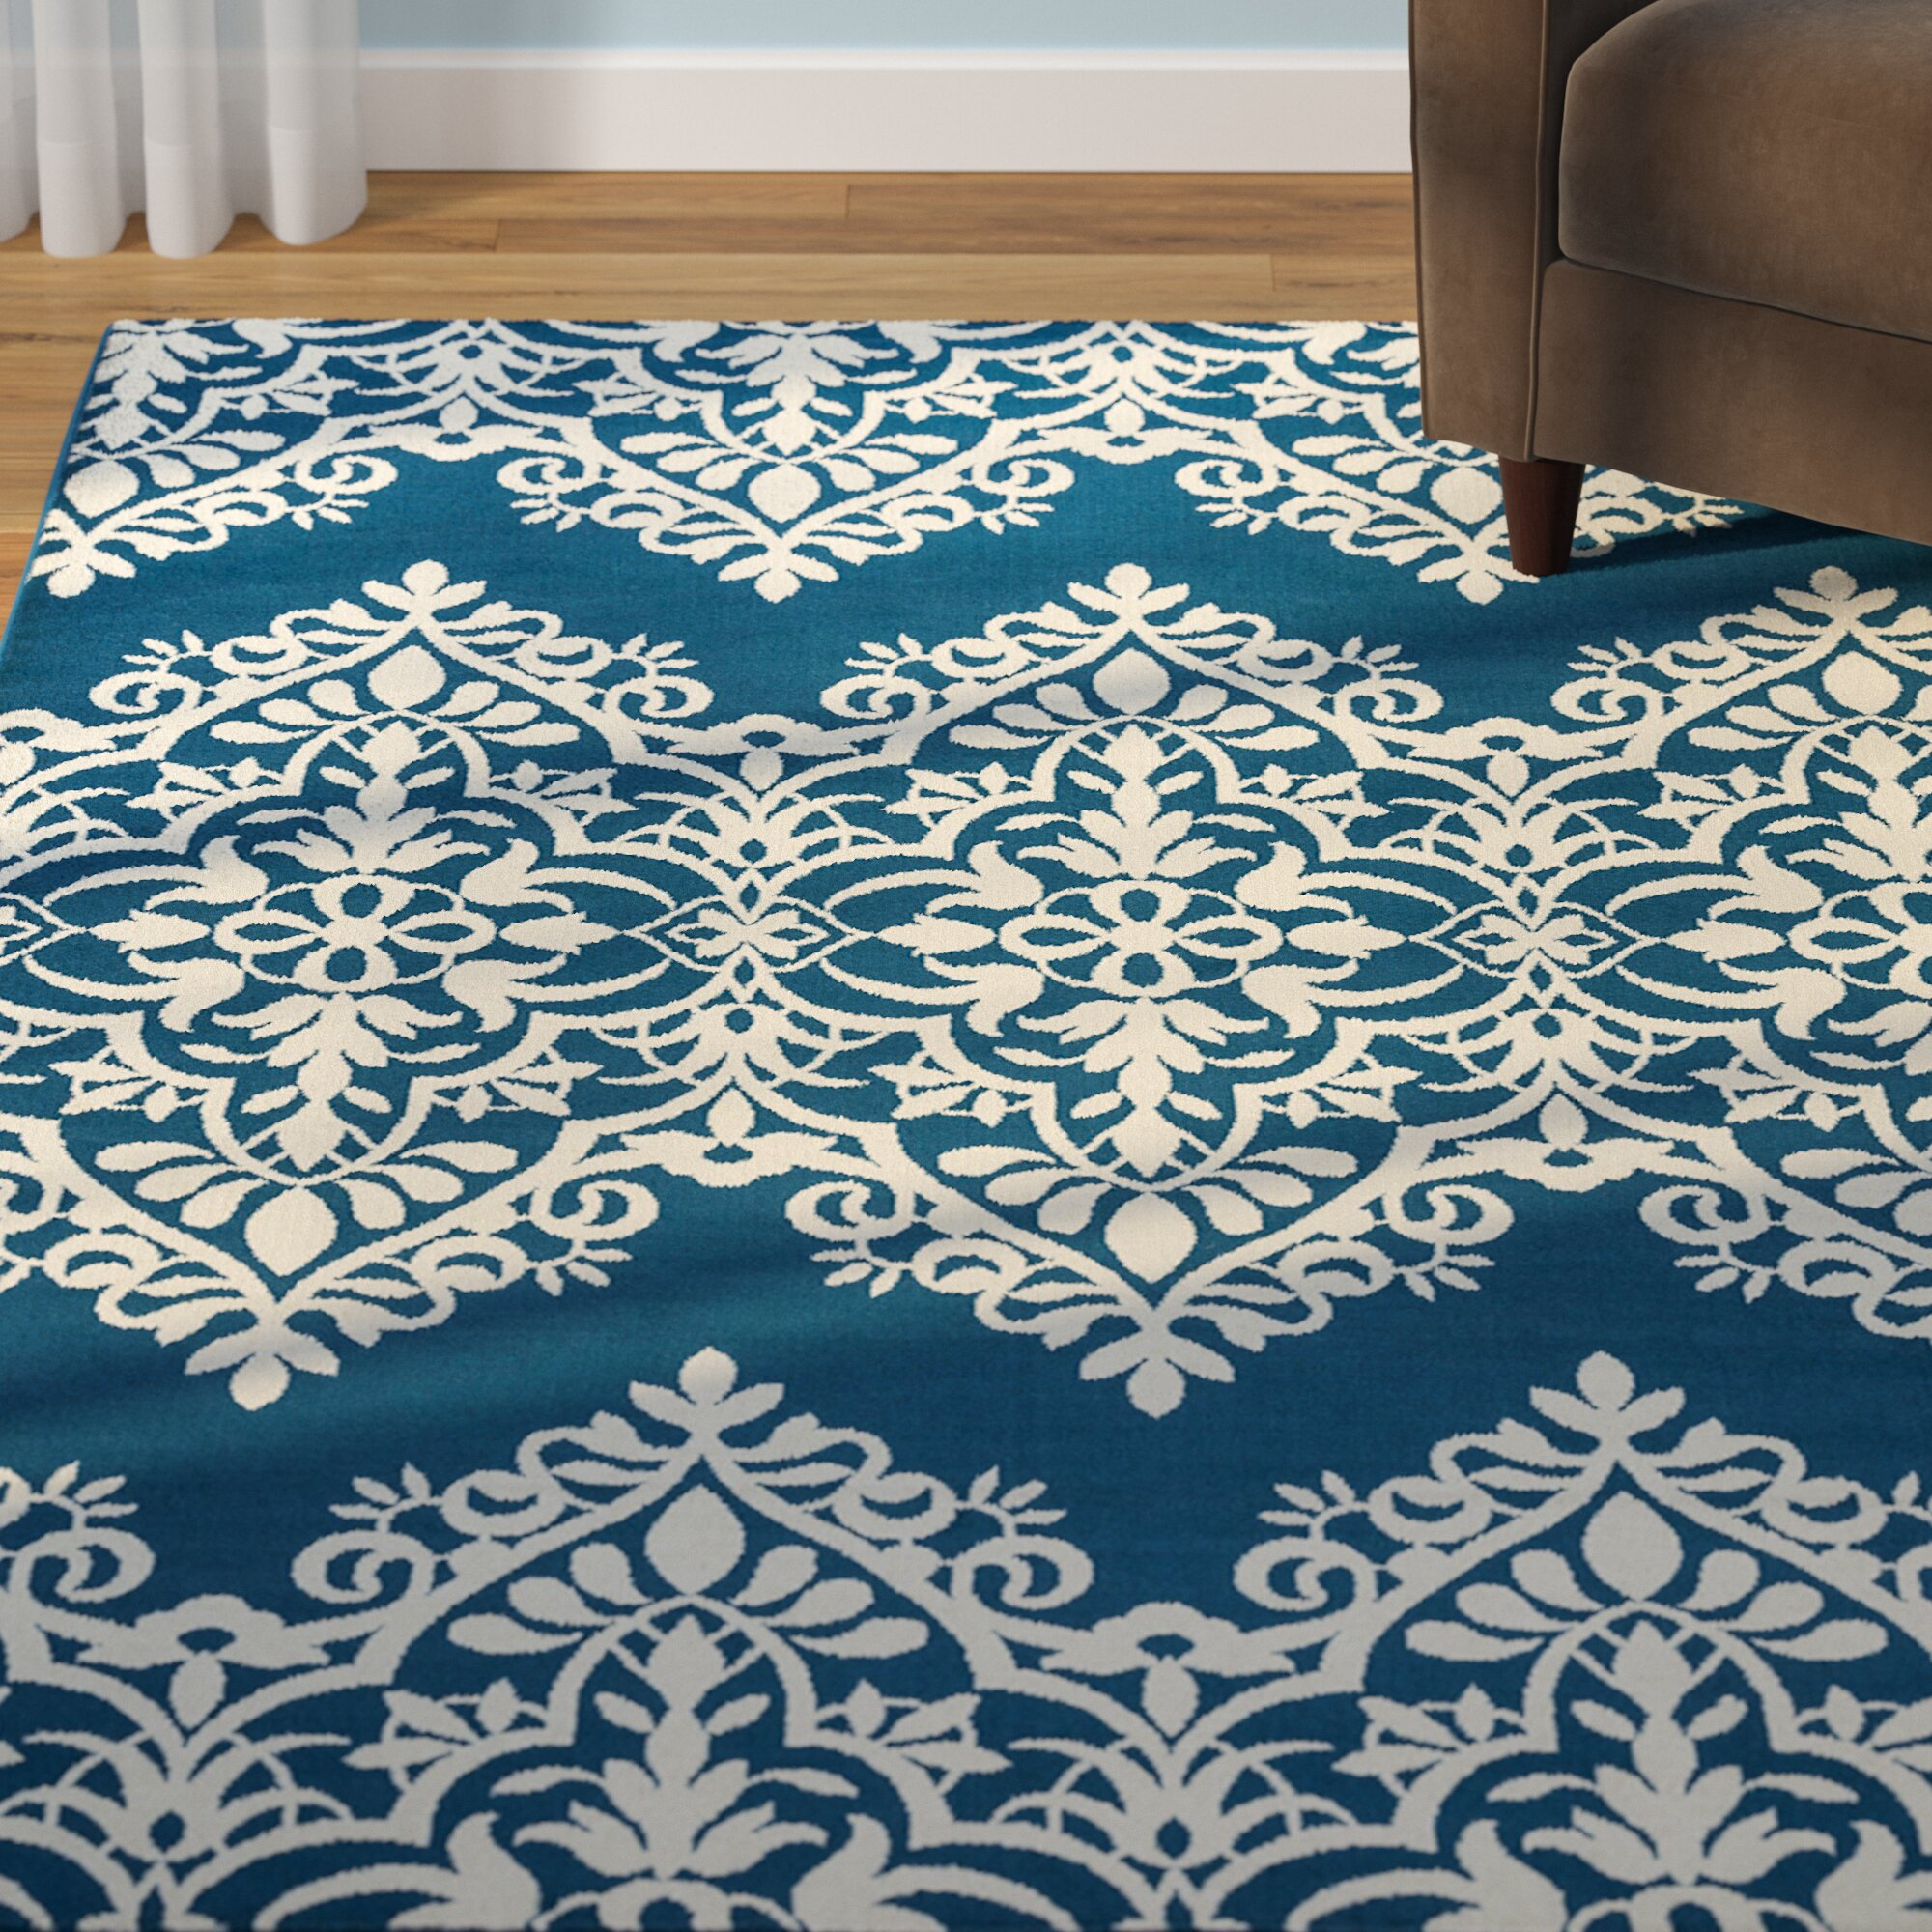 andover mills pearl blue ivory indoor outdoor area rug. Black Bedroom Furniture Sets. Home Design Ideas